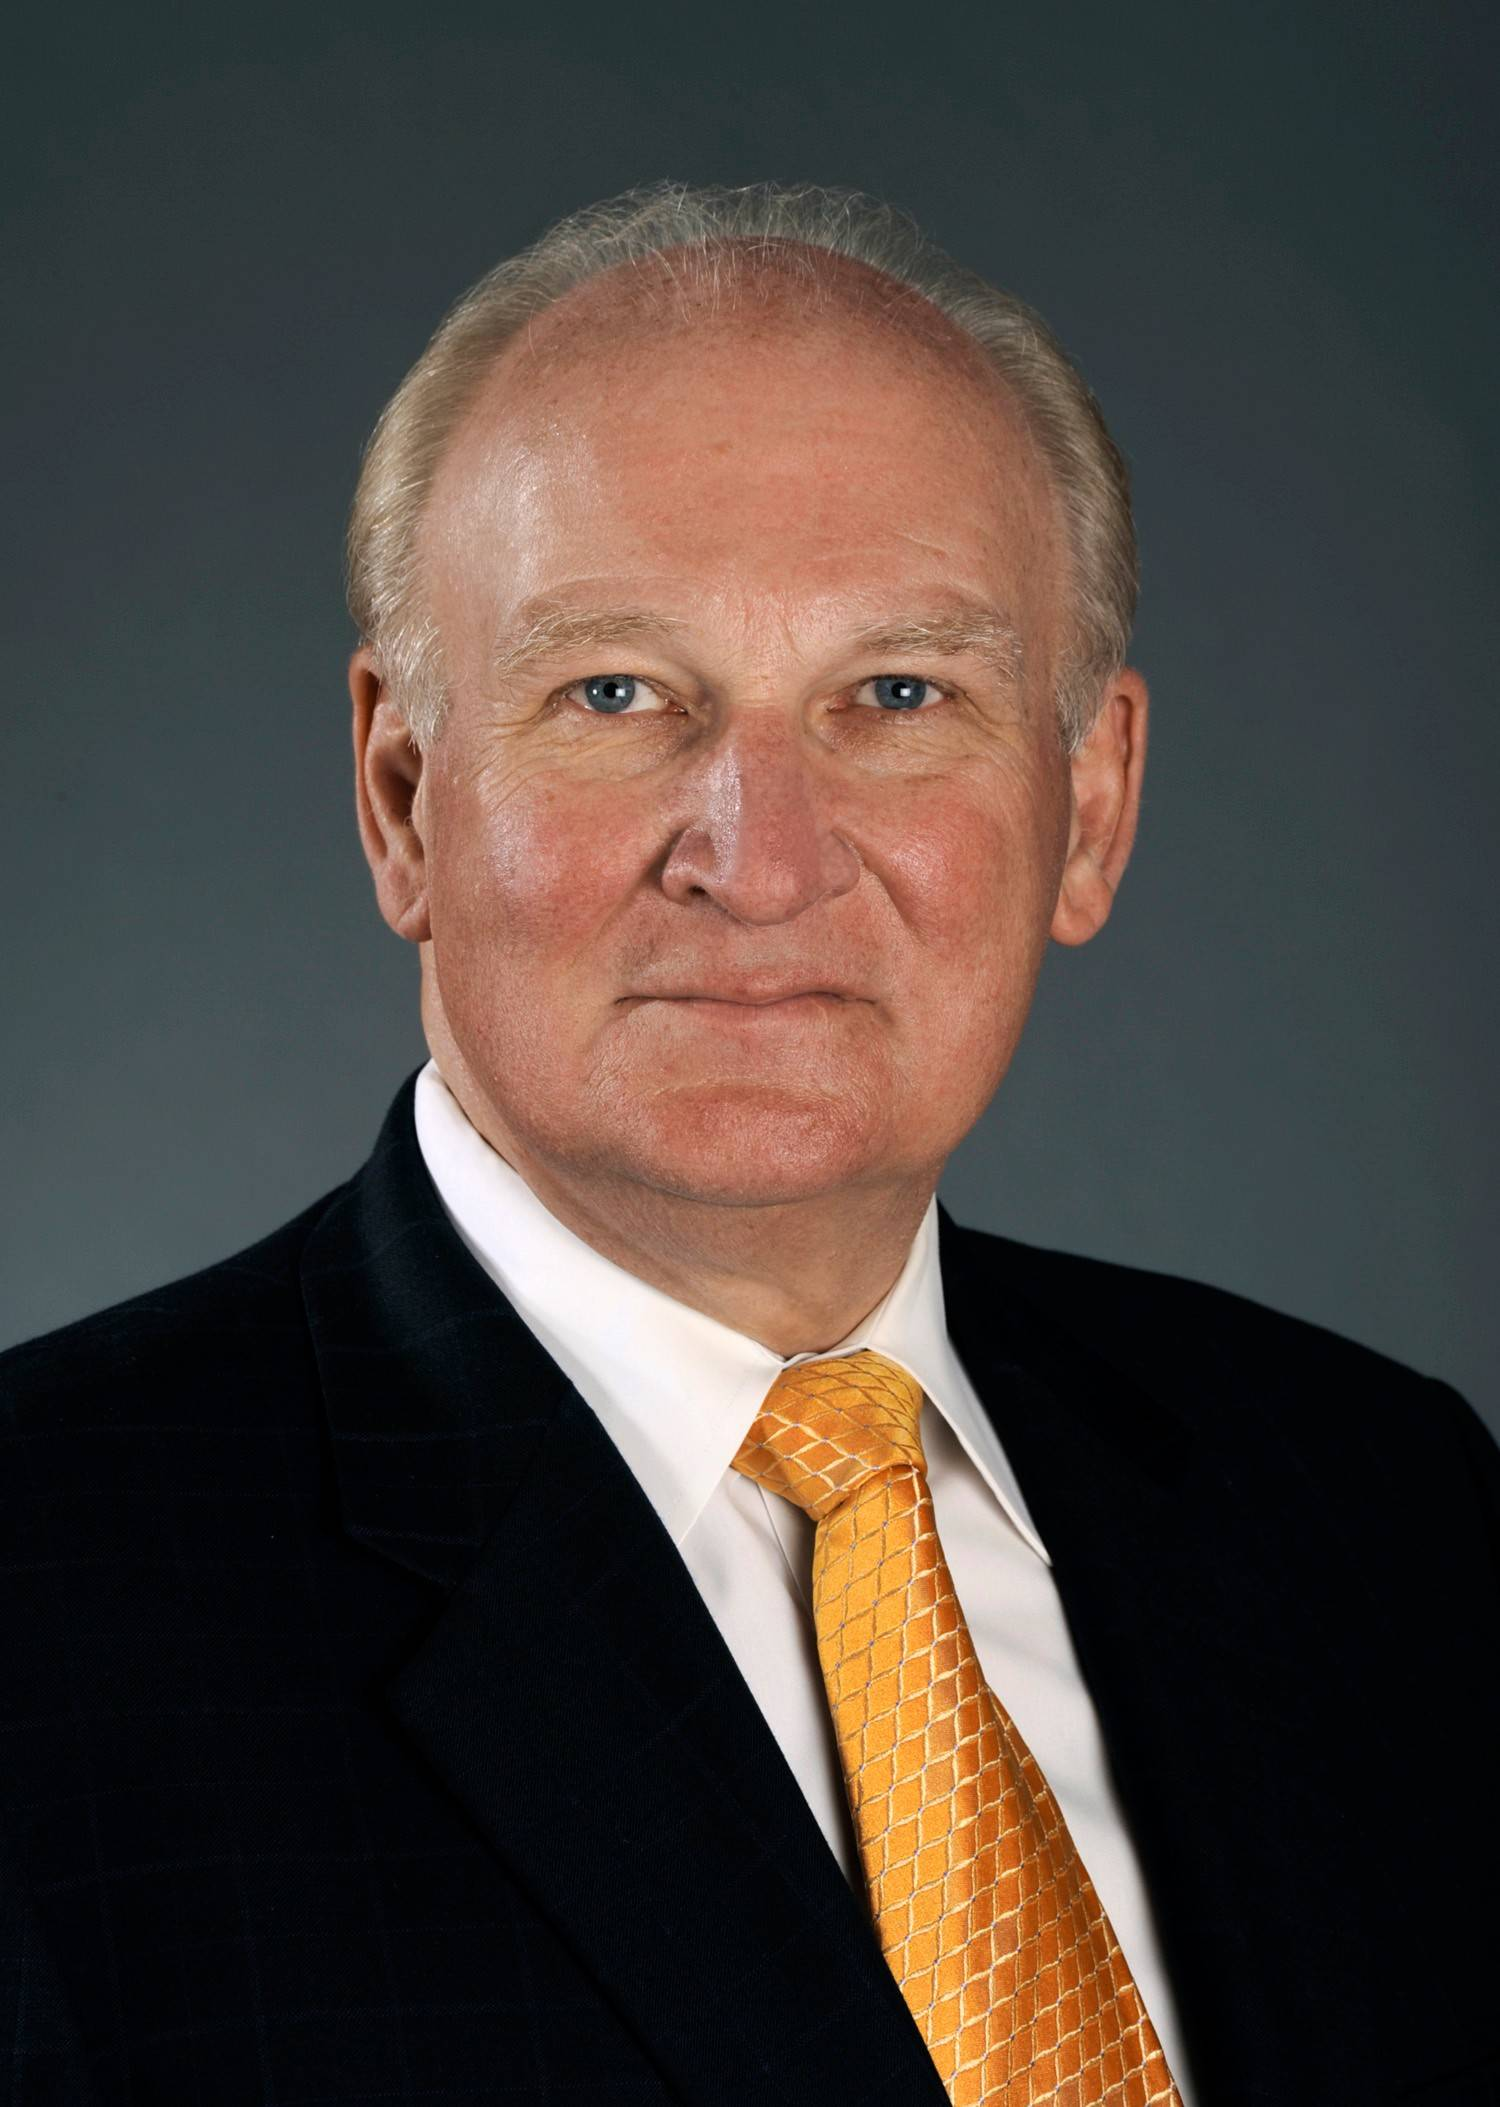 College of DuPage President Robert Breuder's contract, set to expire in 2019, was voided last month by the college board.